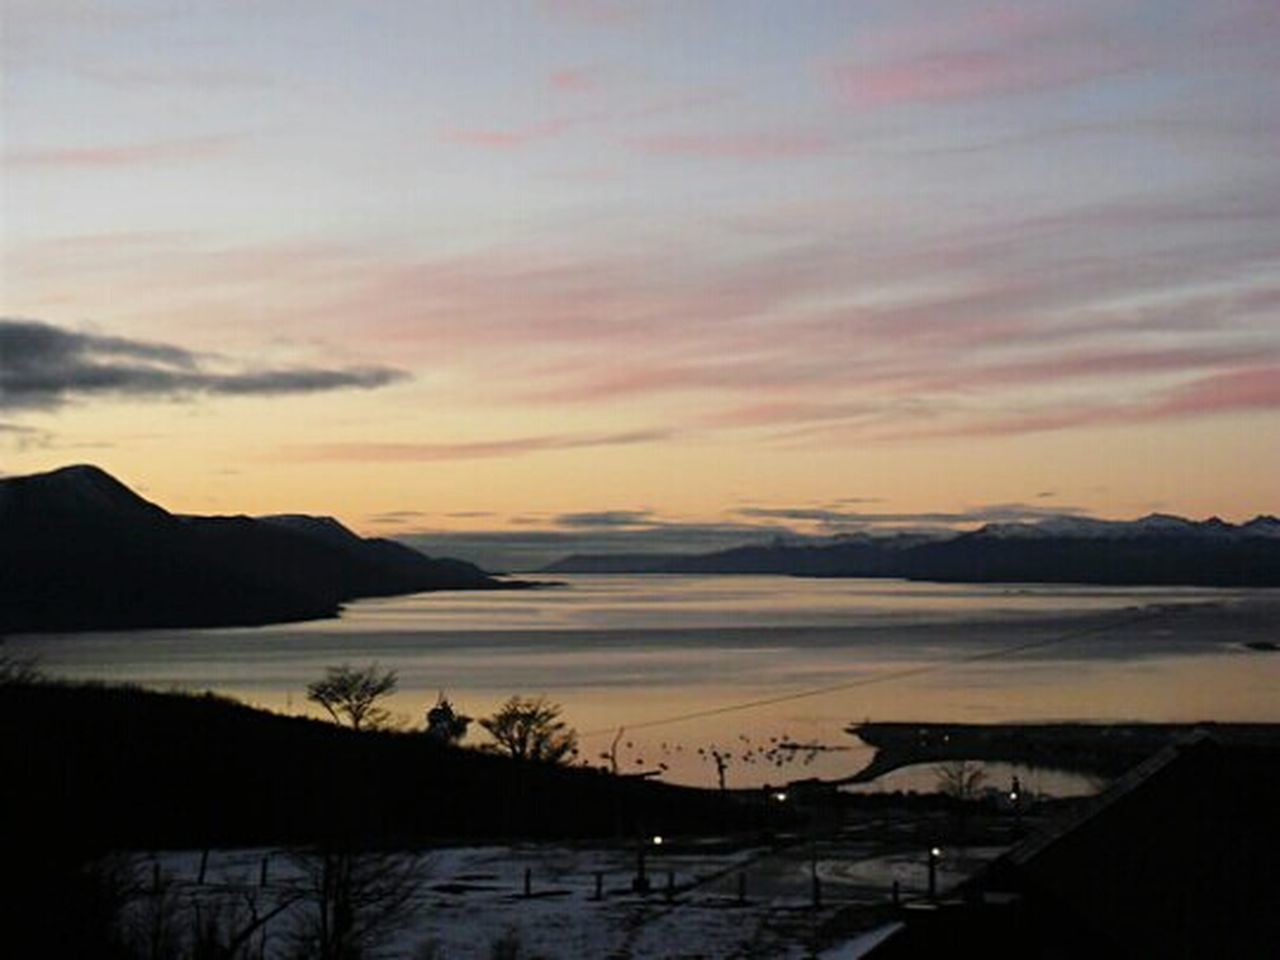 Sunset Tranquil Scene Beauty In Nature Outdoors Tranquility No People Sea Landscape Nature Ushuaïa Fin Del Mundo Argentina Travel Tierra Del Fuego Canal Beagle